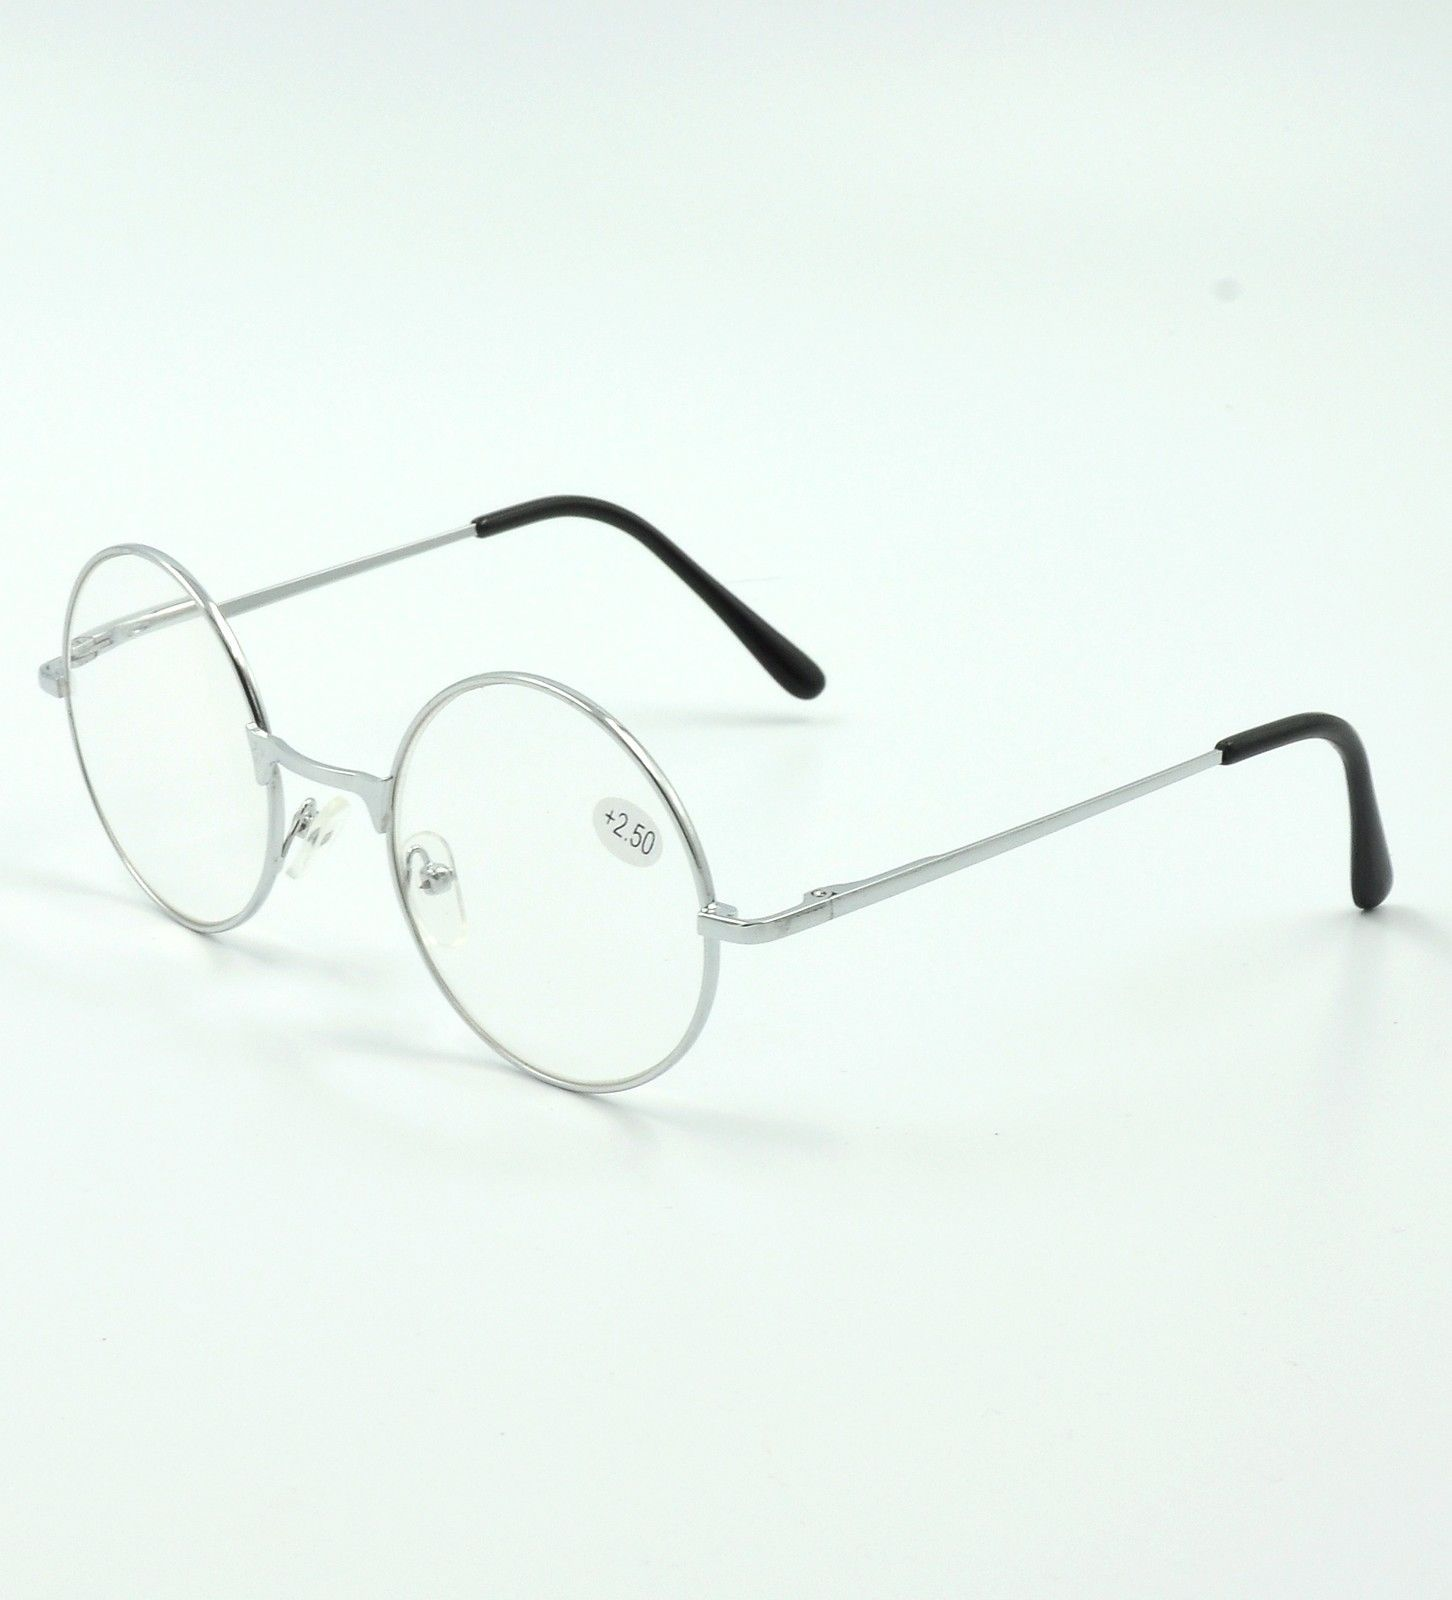 Primary image for Vintage Round Silver Metal Reading Glasses Retro Readers John Lennon +1.00~+4.00